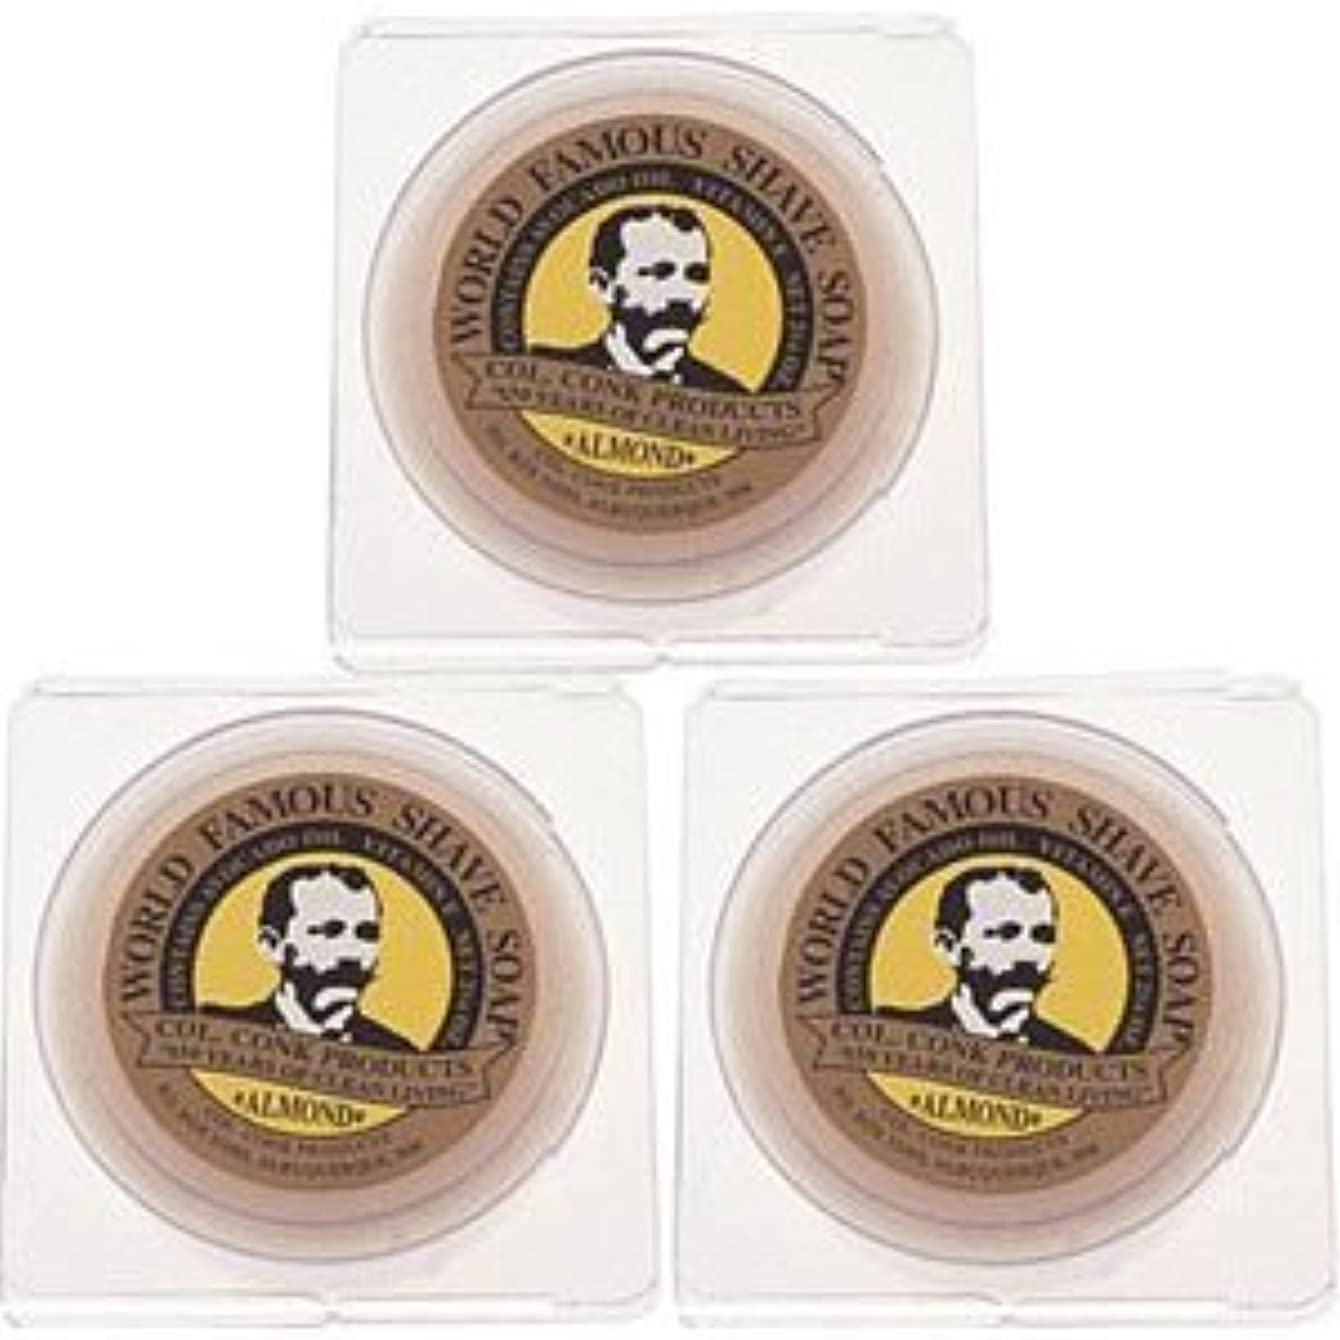 重要性を除くトランジスタCol. Conk World's Famous Shaving Soap Almond * 3 - Pack * Each Net Weight 2.25 Oz by Colonel Conk [並行輸入品]